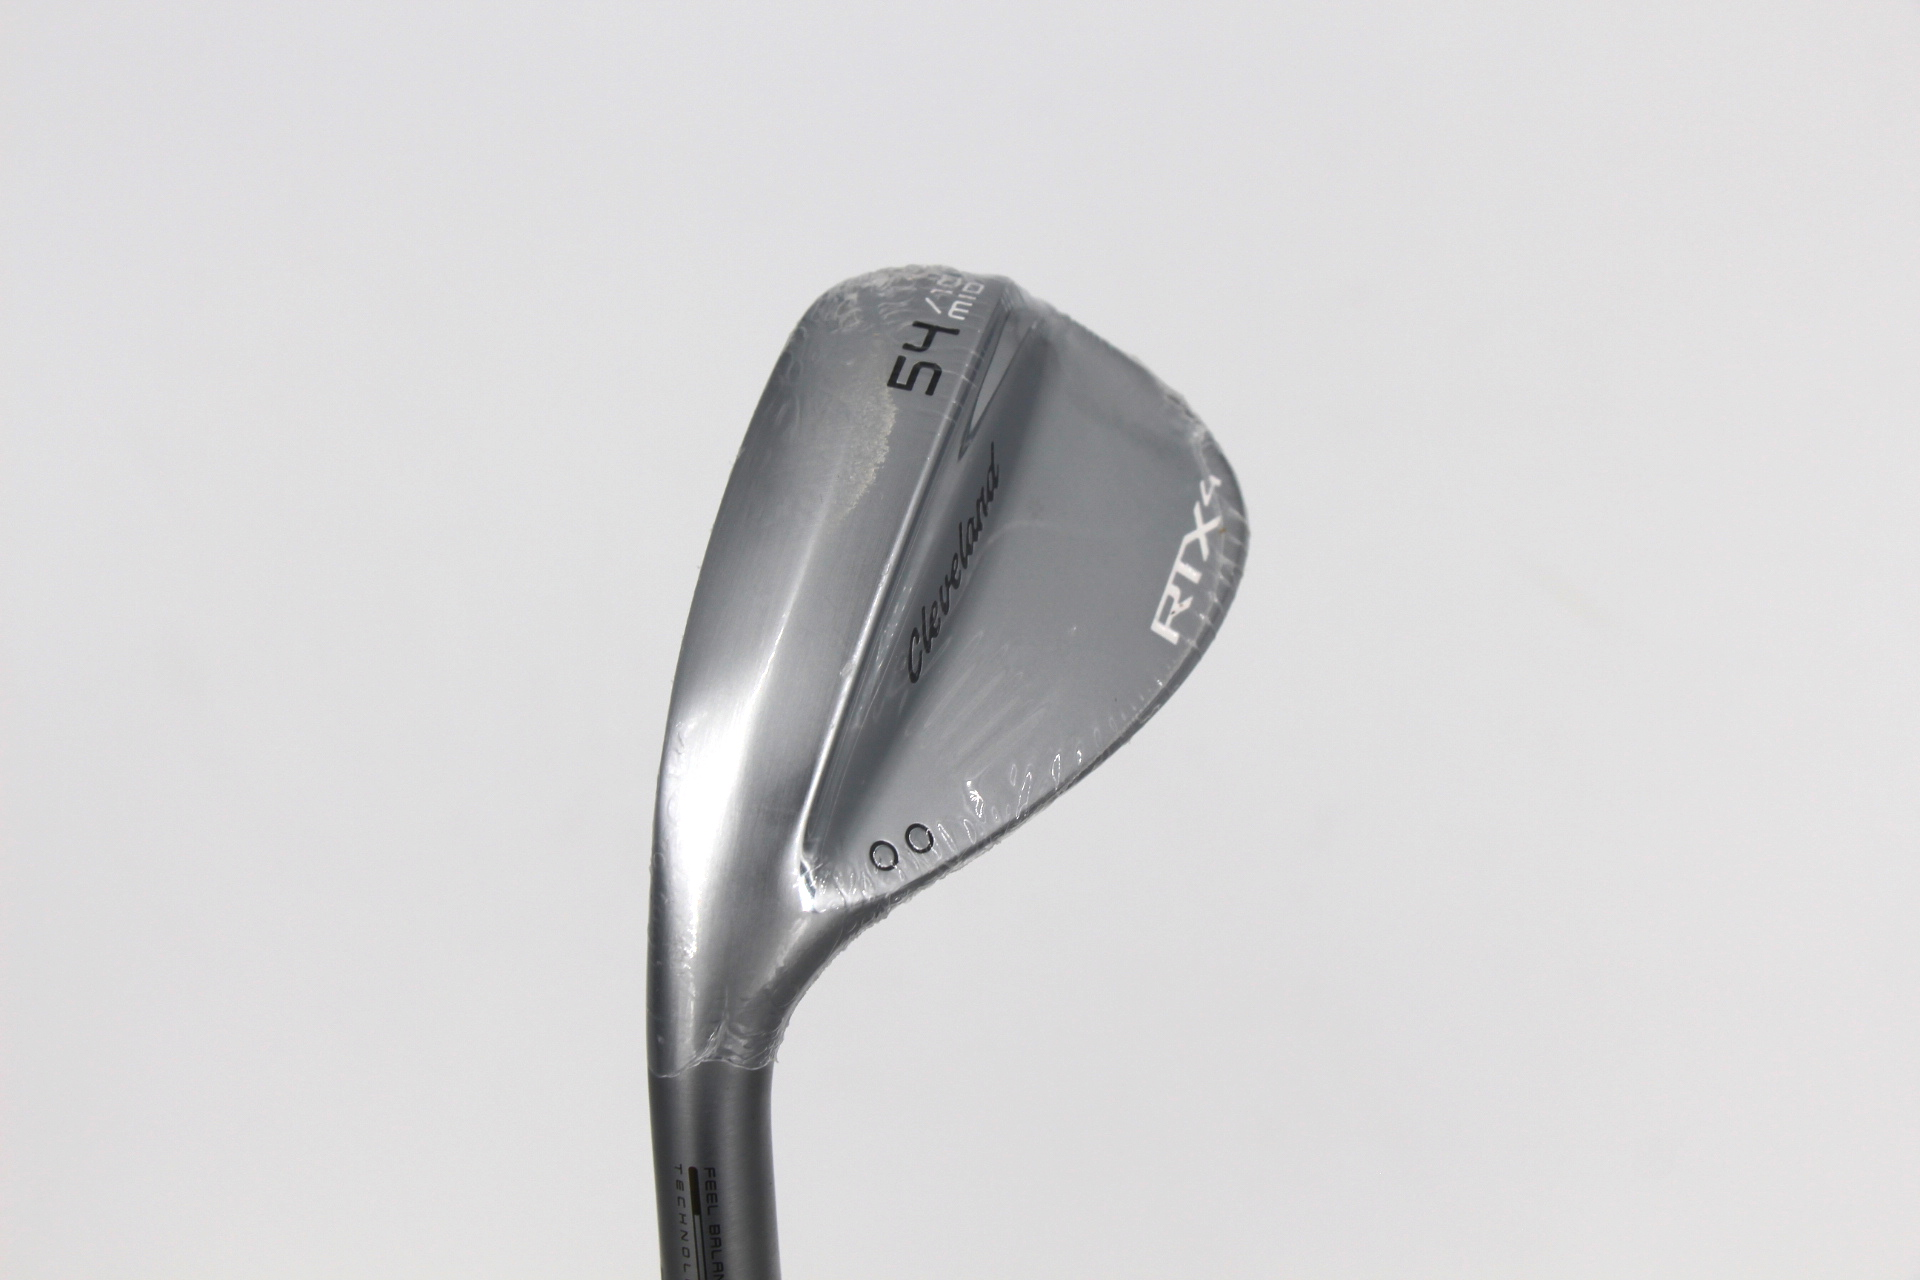 Cleveland RTX-4 Mid Grind Tour Satin 54″ Wedge -Left Handed